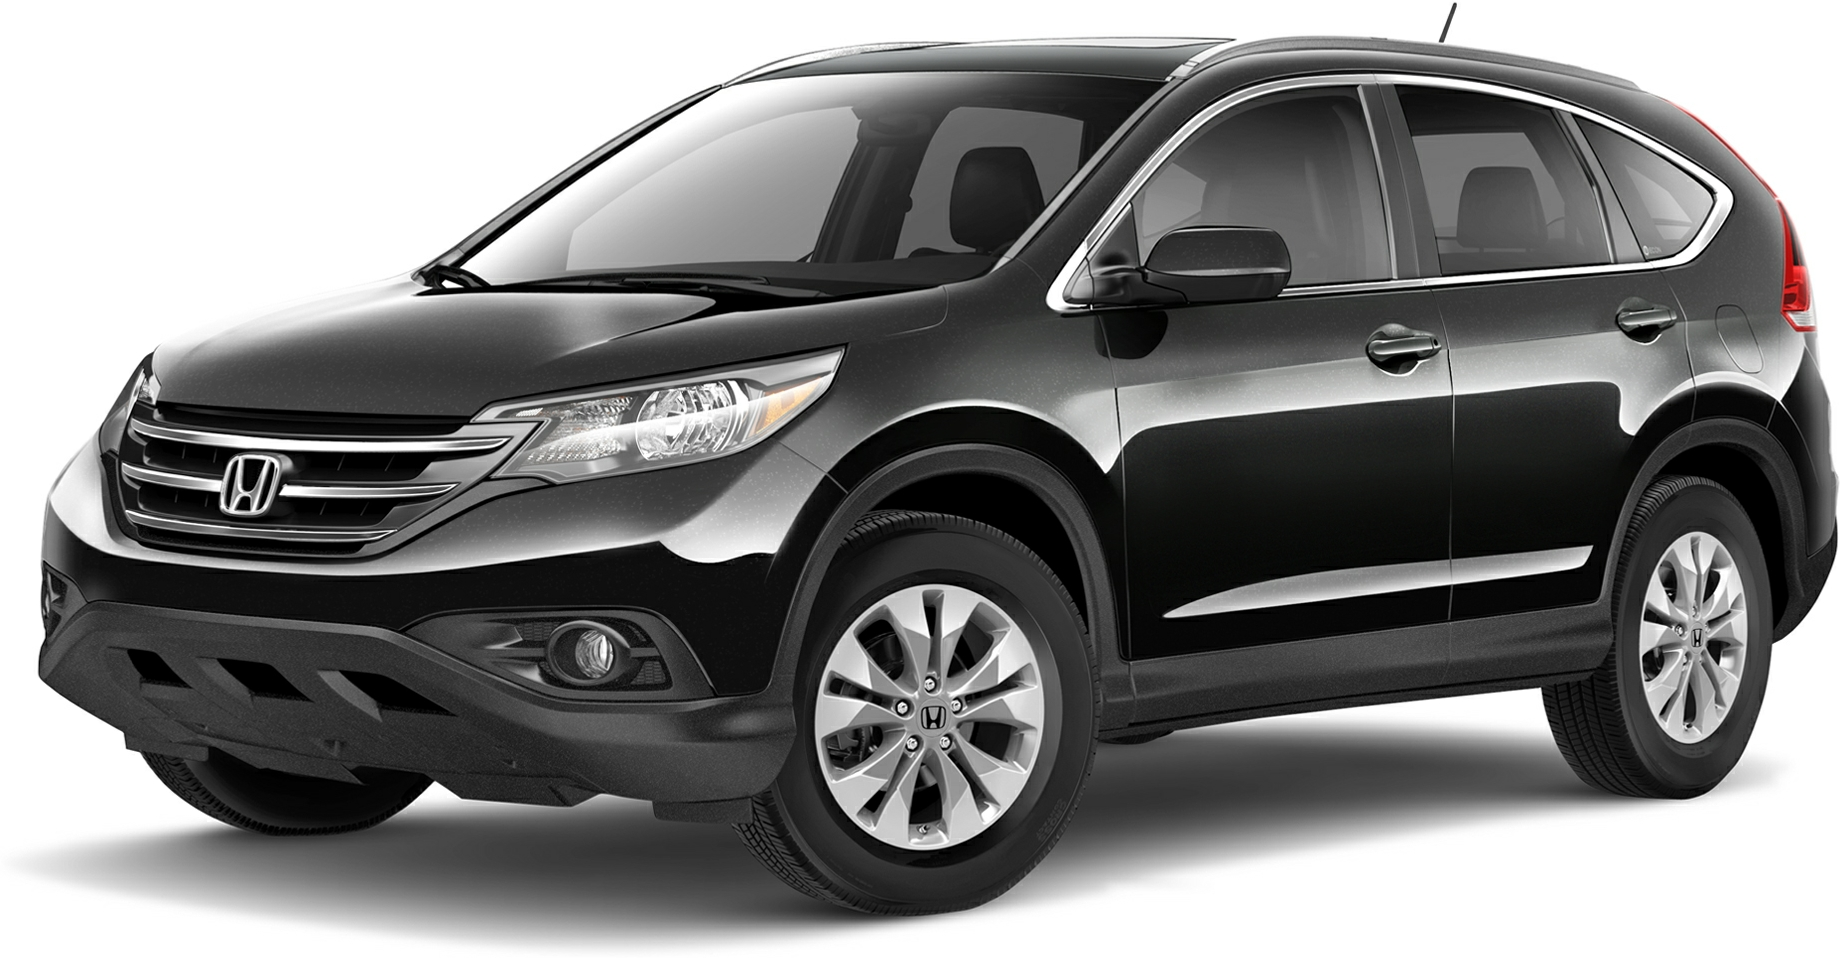 Toyota highlander vs honda pilot cargurus autos post for Honda crv vs toyota highlander